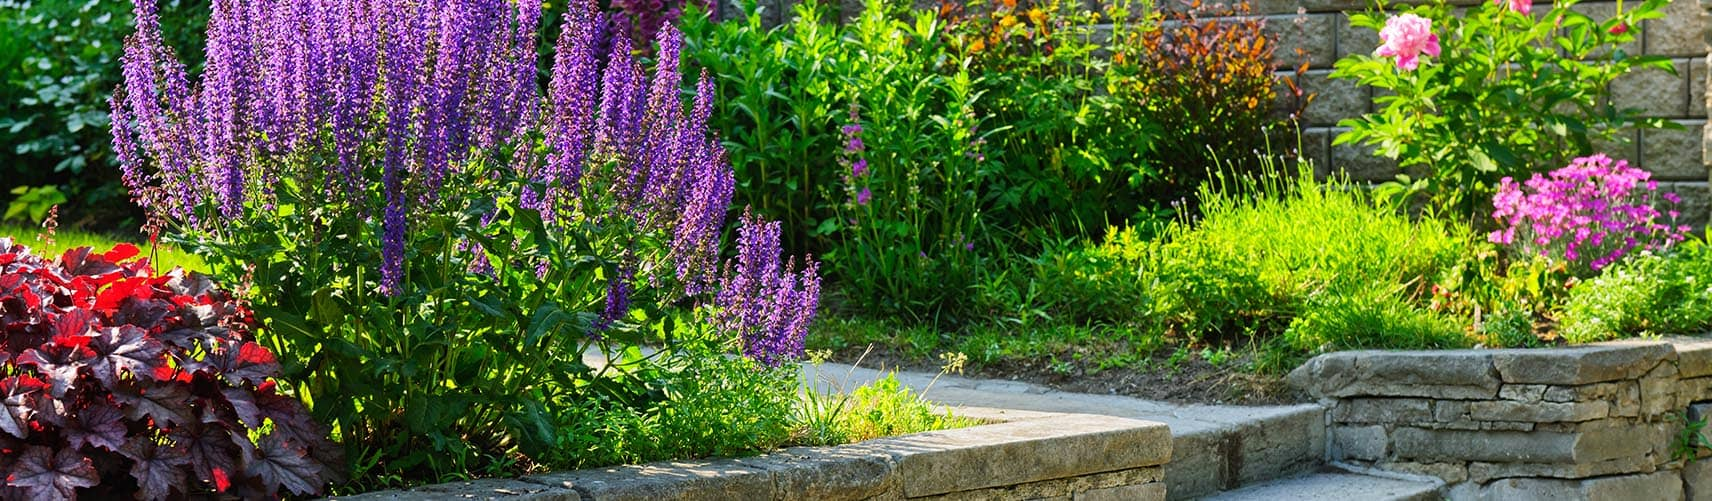 Universal City Landscaping Company, Landscape Design and Commercial Landscaping Services